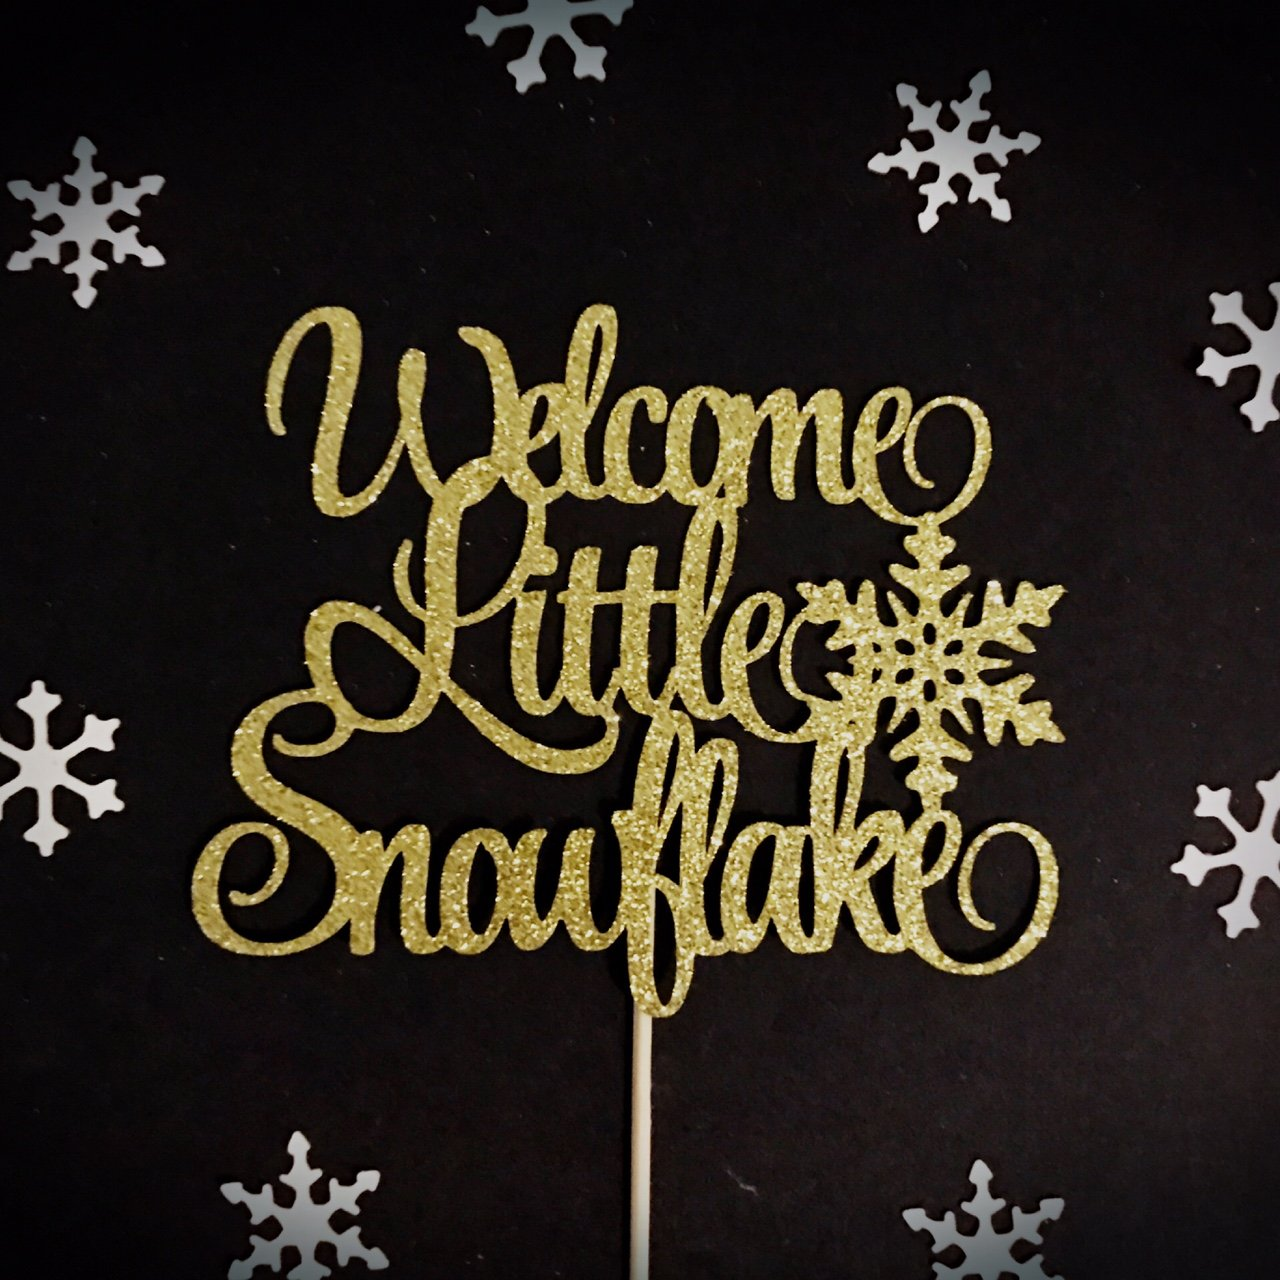 Welcome Little Snowflake Cake Topper, Snowflake Cake Topper, Winter Onederland Cake Topper, Winter Baby Shower Cake Topper, Winter Birthday Cake Topper, Little Snowflake Party Decorations, Winter Baby Party Decorations